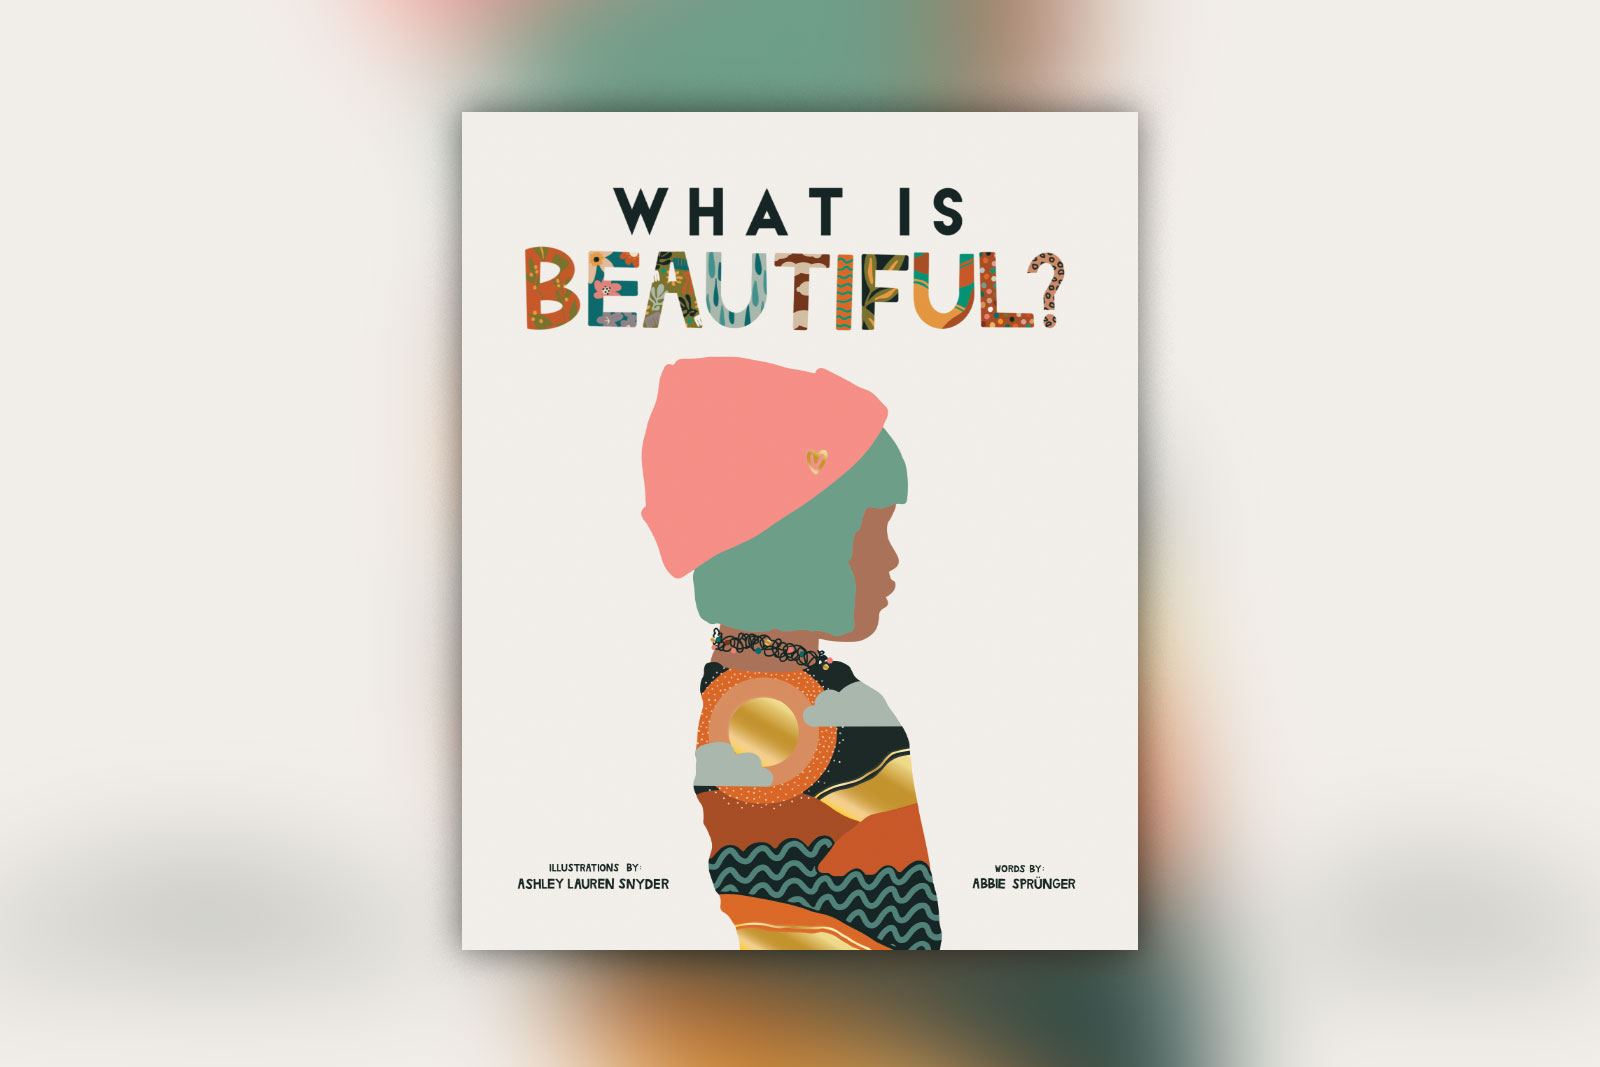 What is beautiful book cover